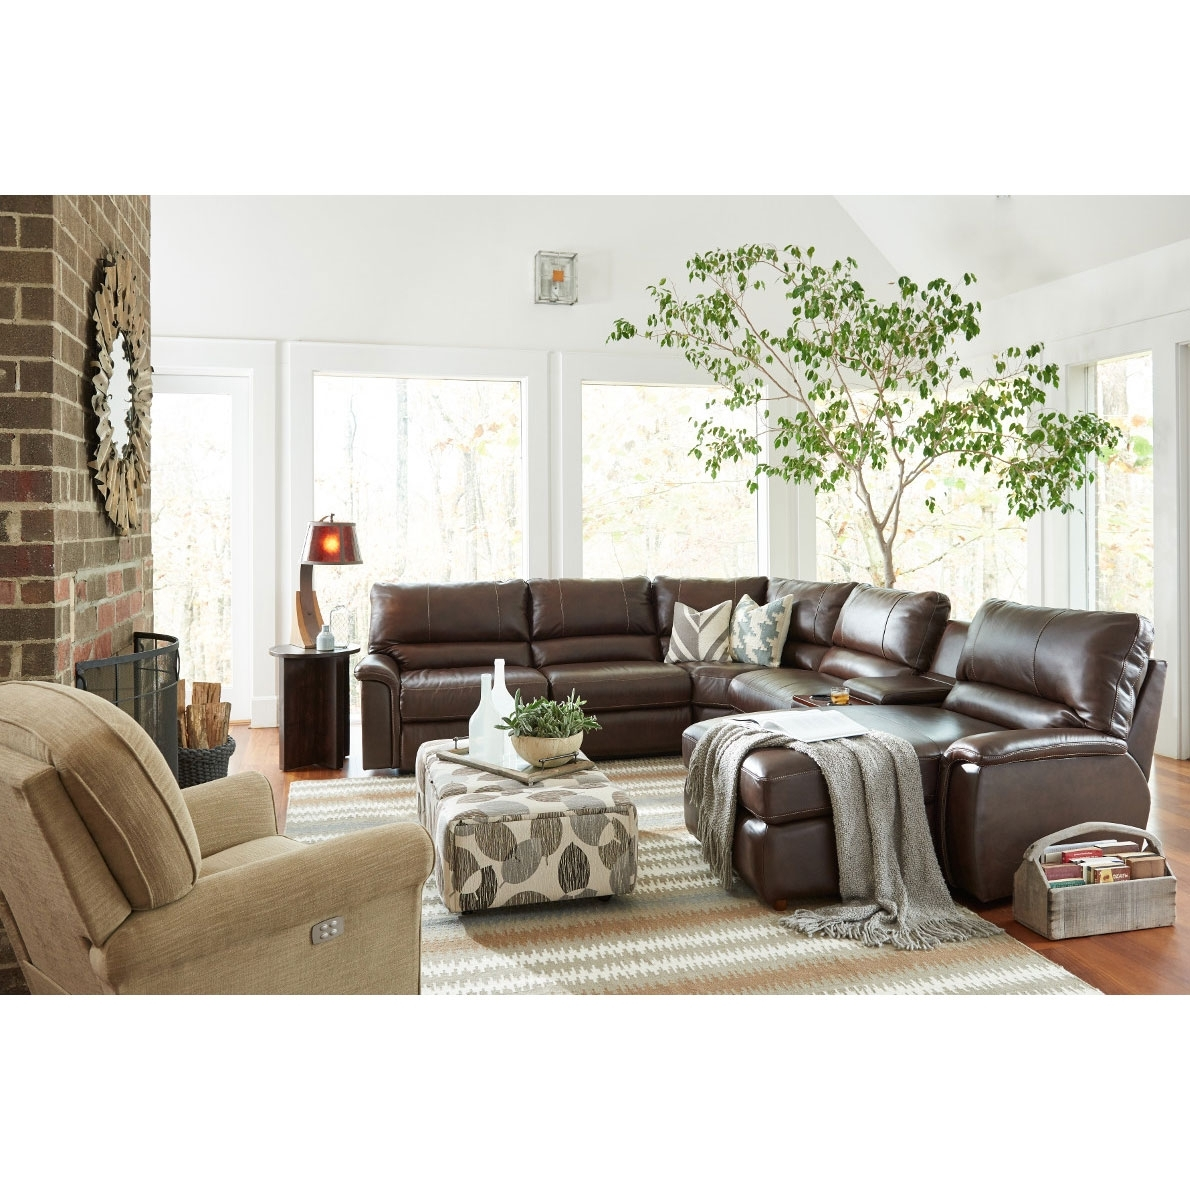 Aspen Sectional Intended For Aspen 2 Piece Sleeper Sectionals With Laf Chaise (View 16 of 25)